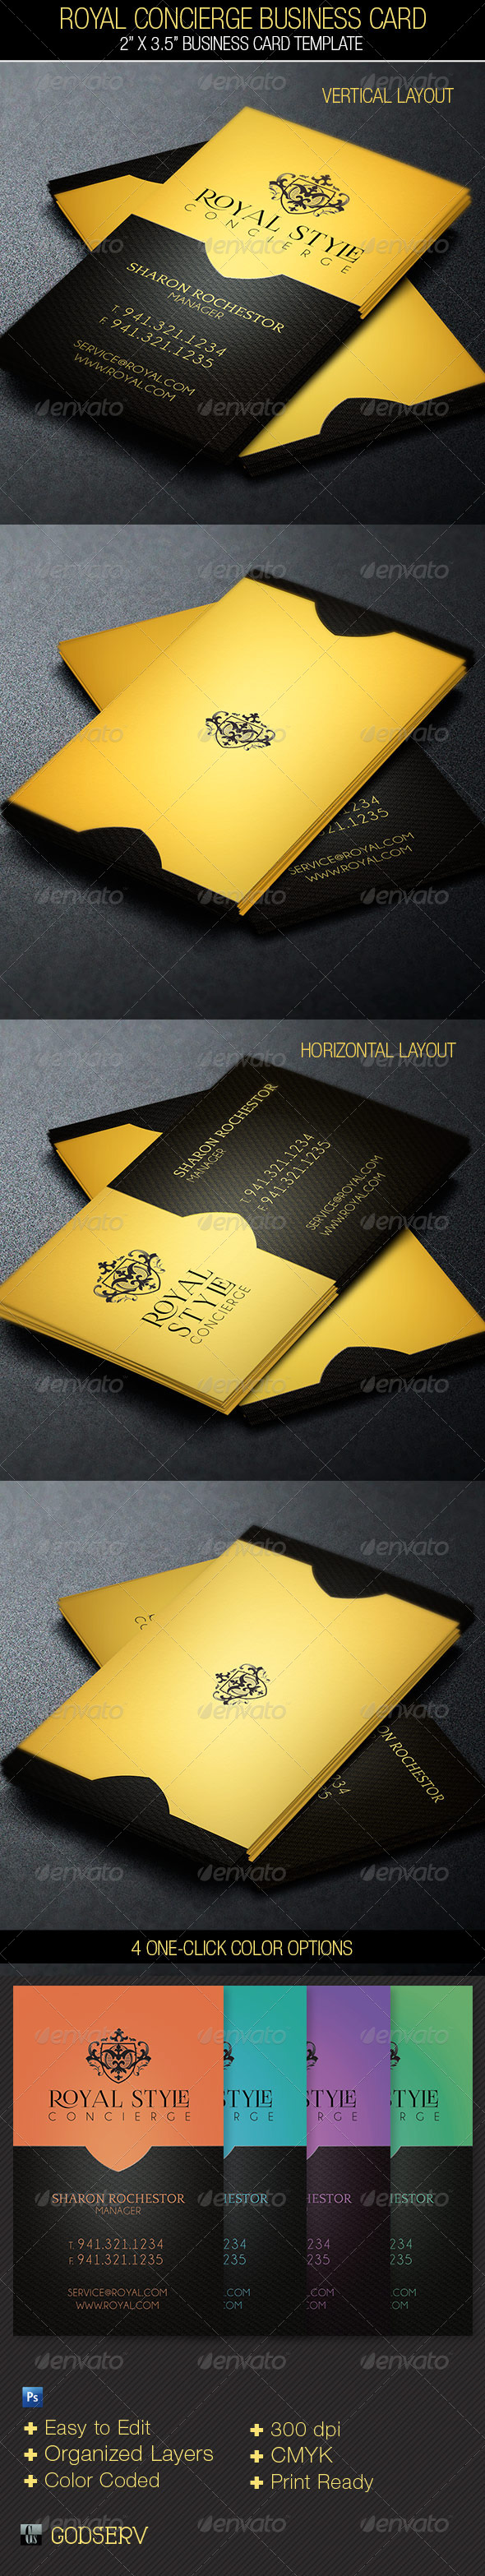 Royal Concierge Business Card Template - Industry Specific Business Cards